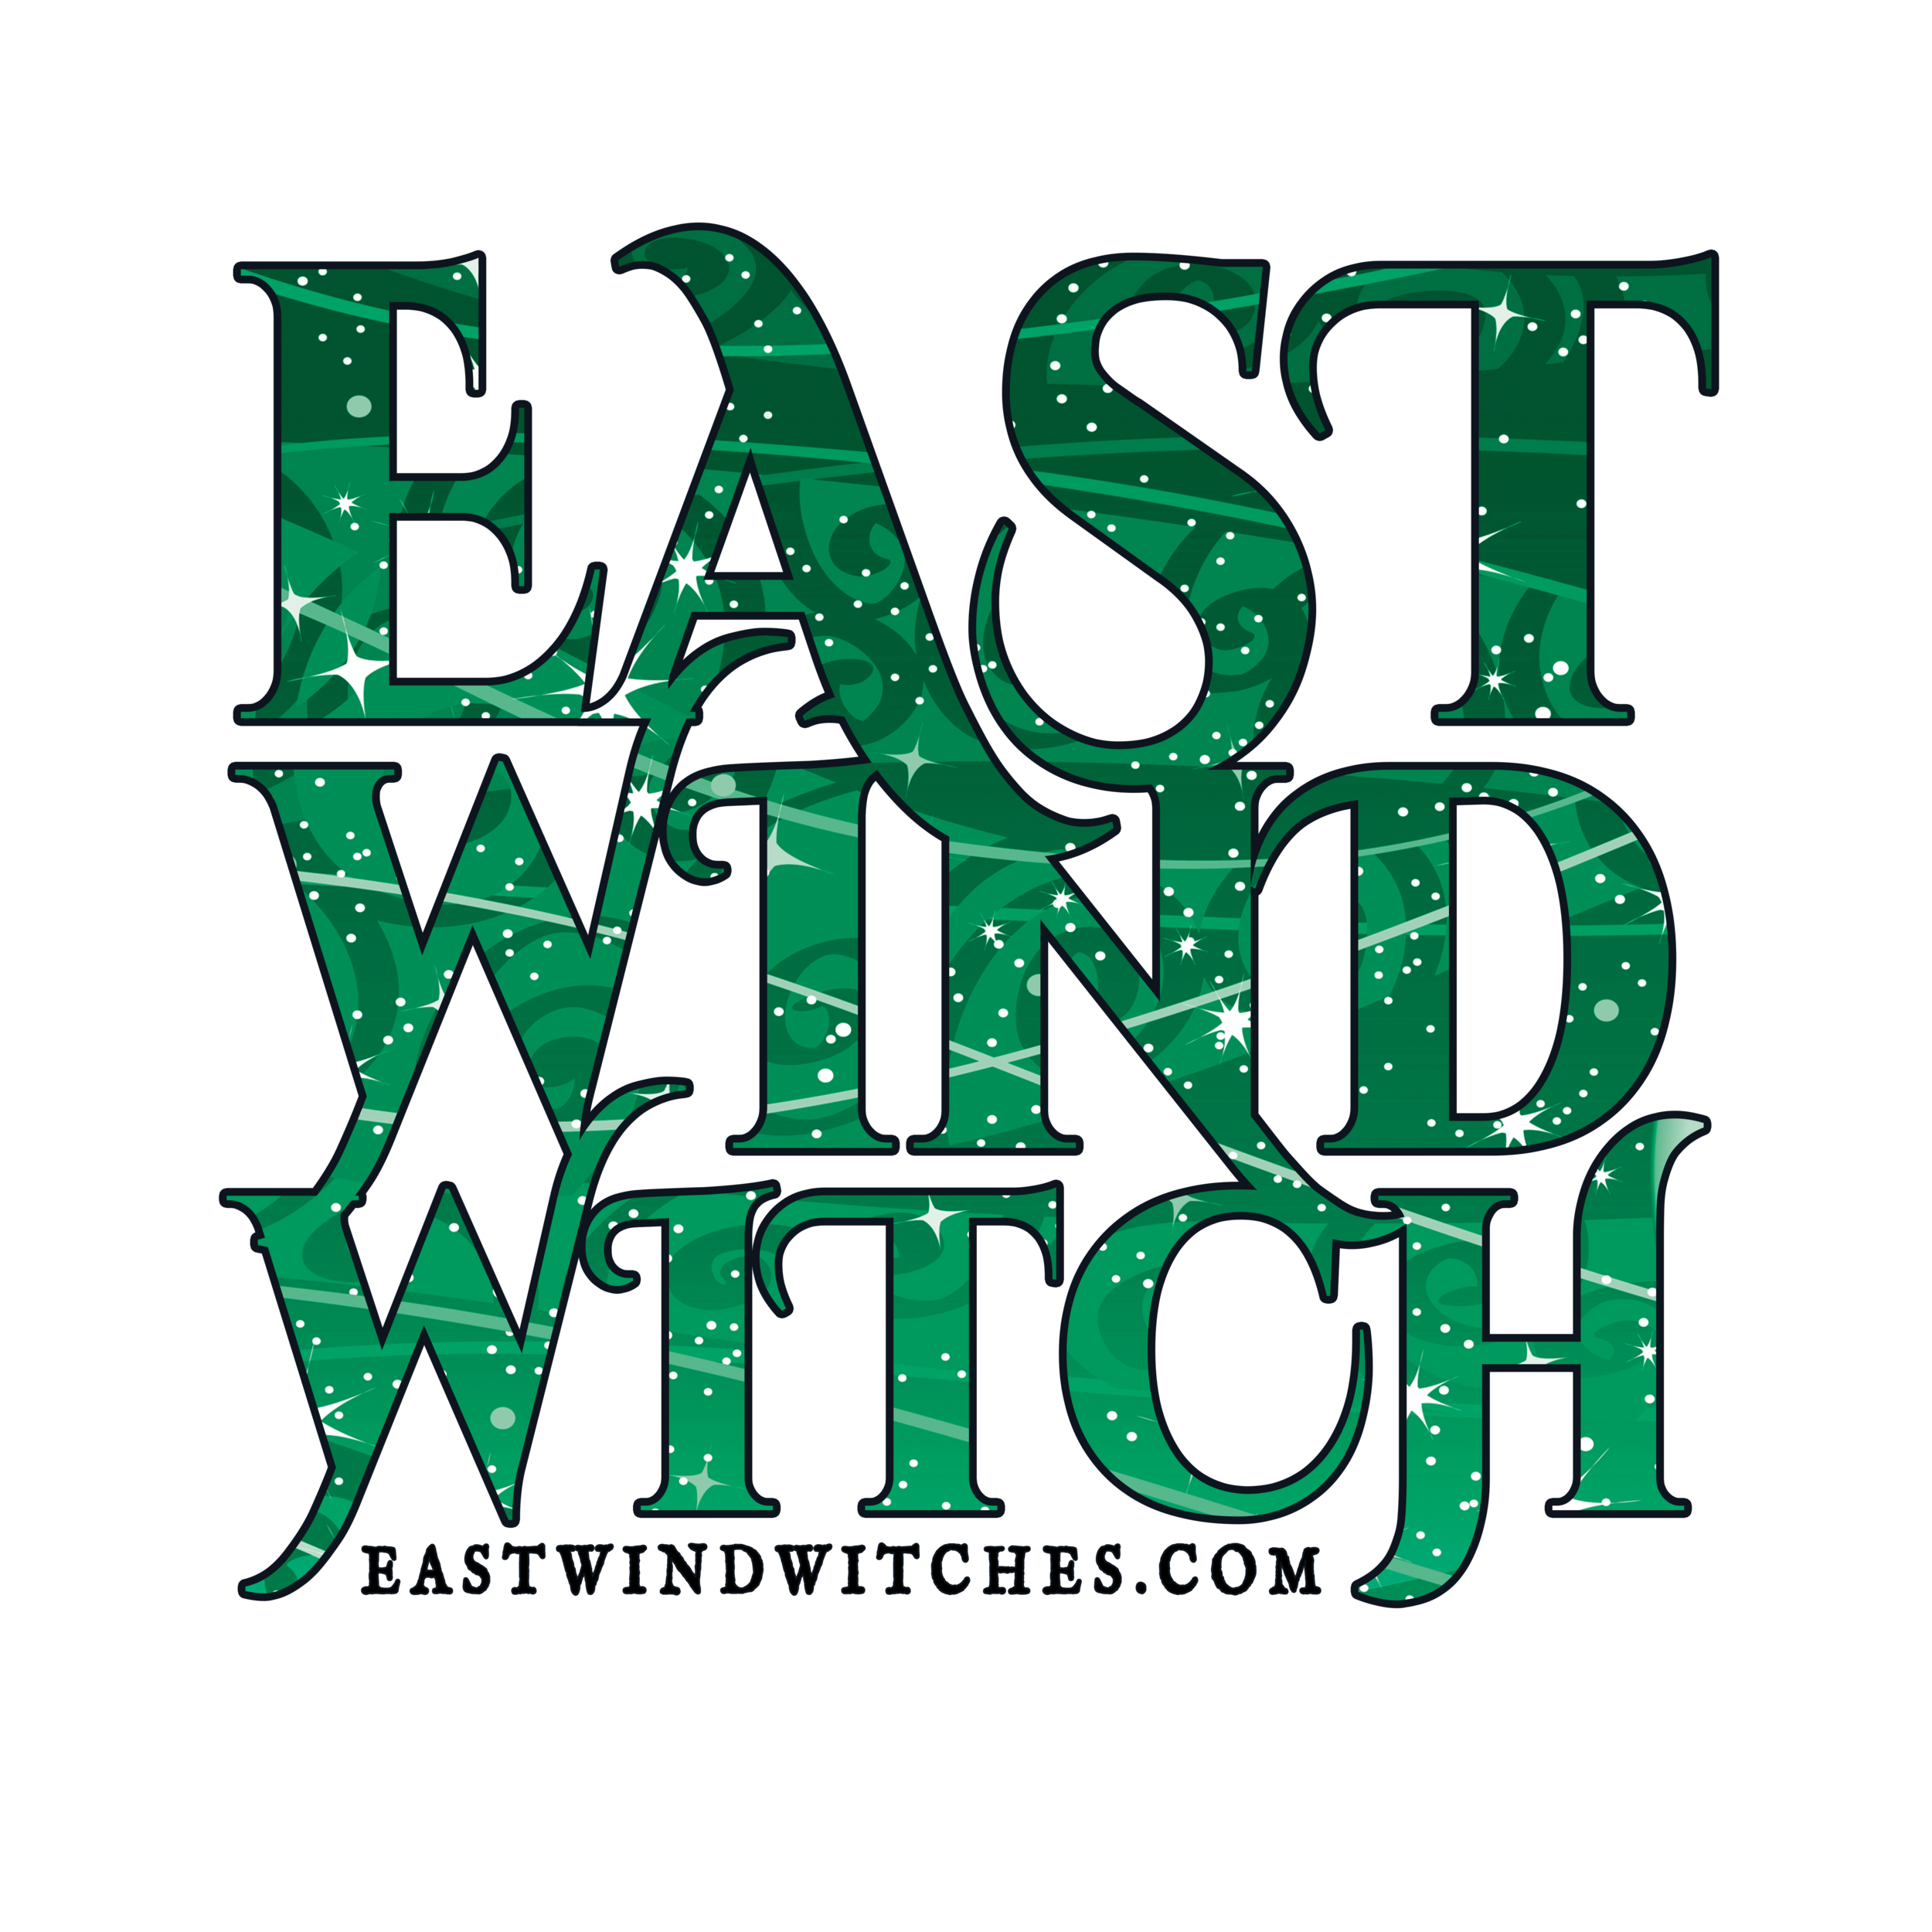 East Wind Witch